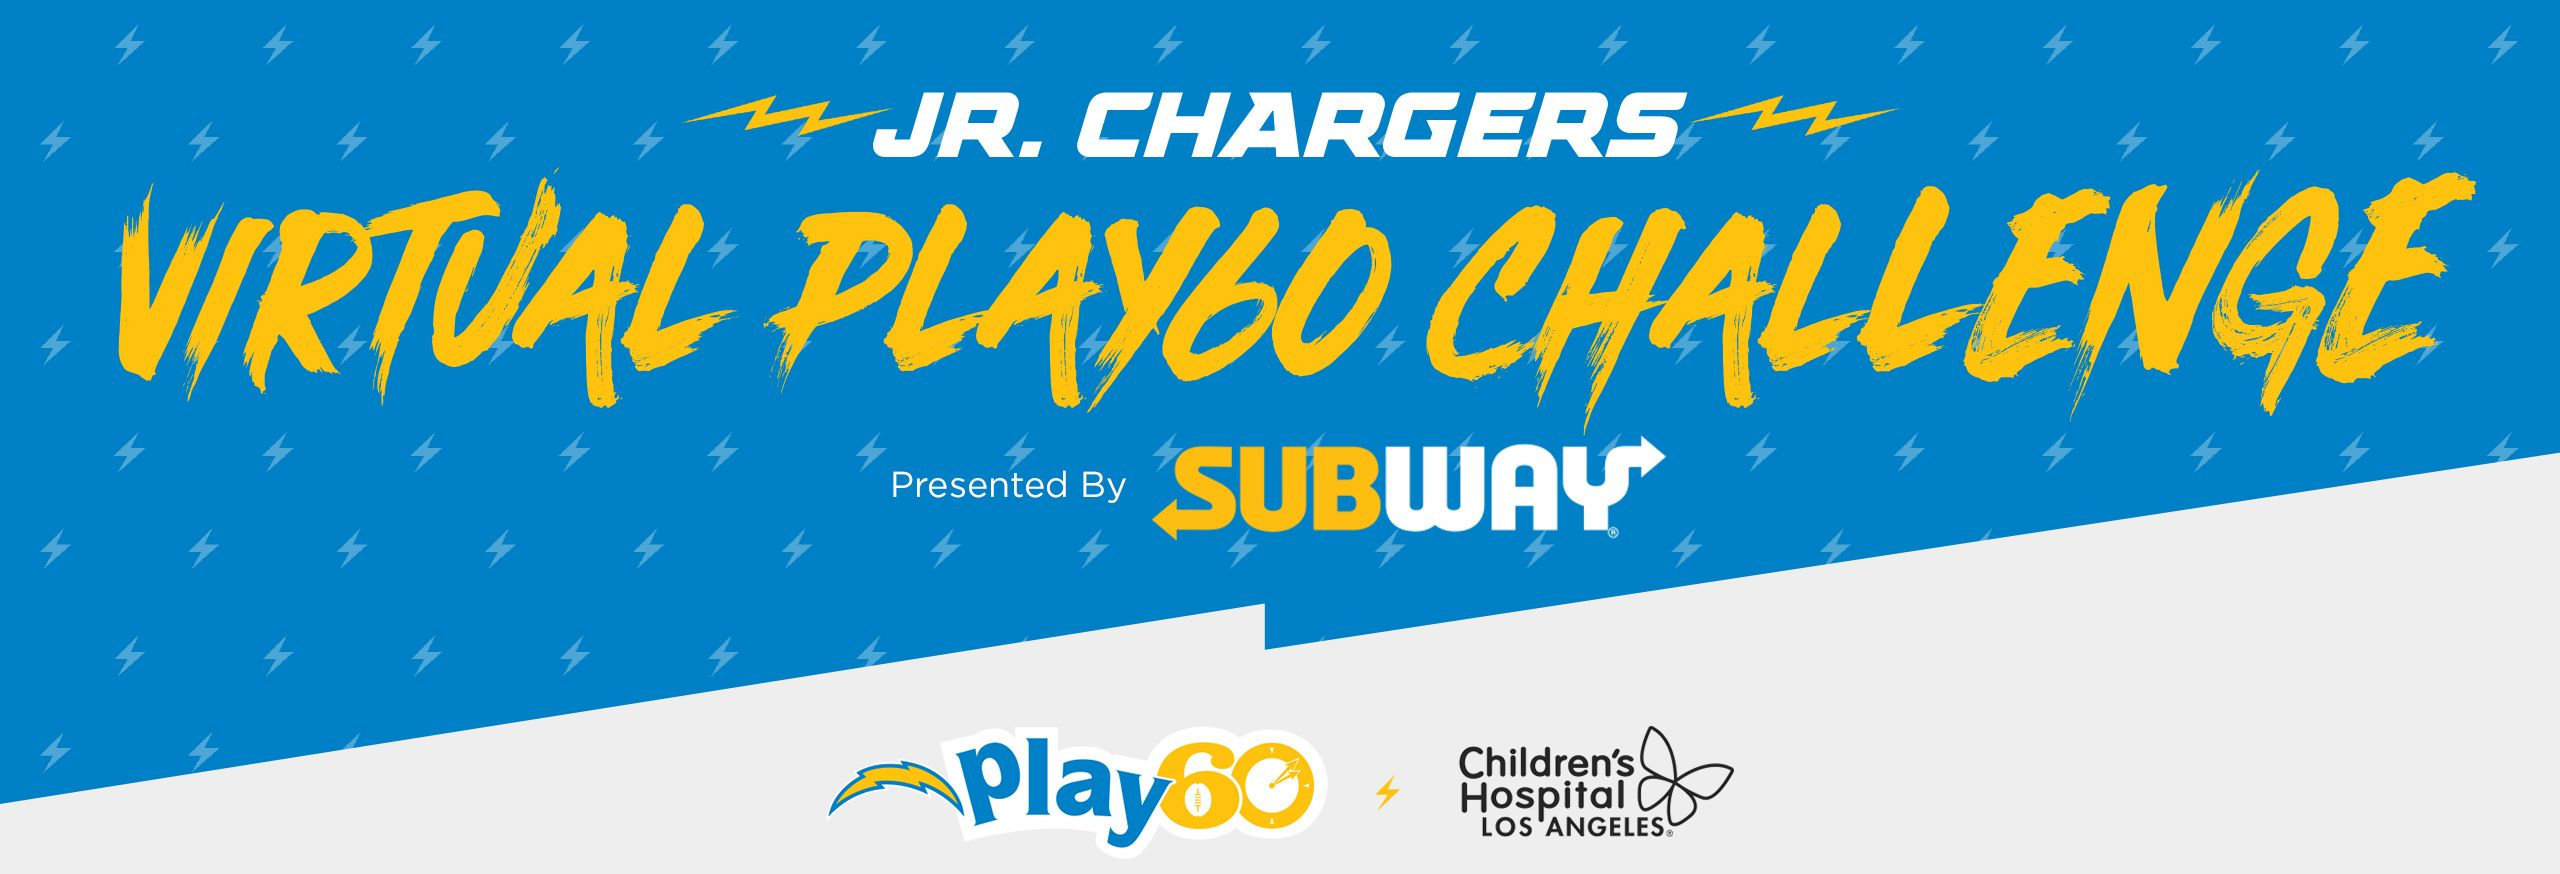 200514_Jr_Chargers_Play60_Site_Header copy